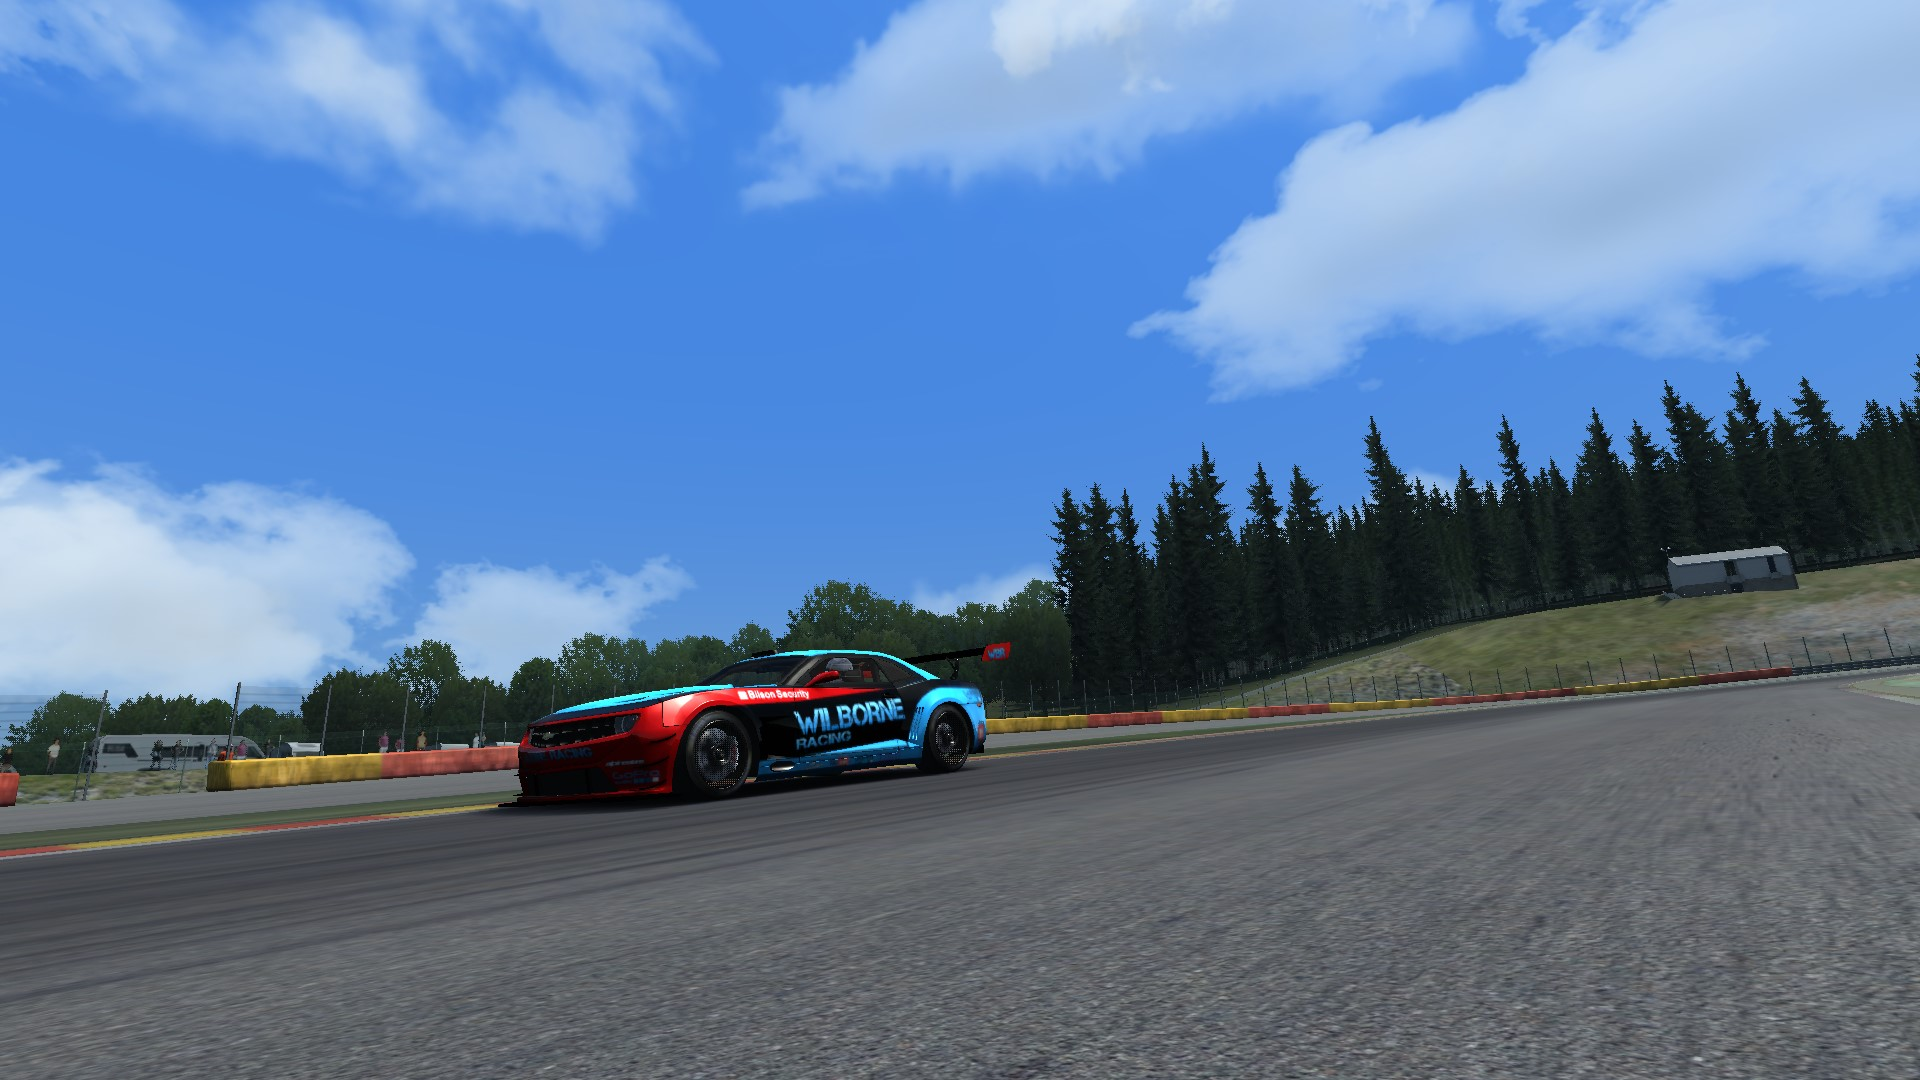 Screenshot_sareni_camaro_gt_racecar_spa_2-2-2015-17-50-16.jpg